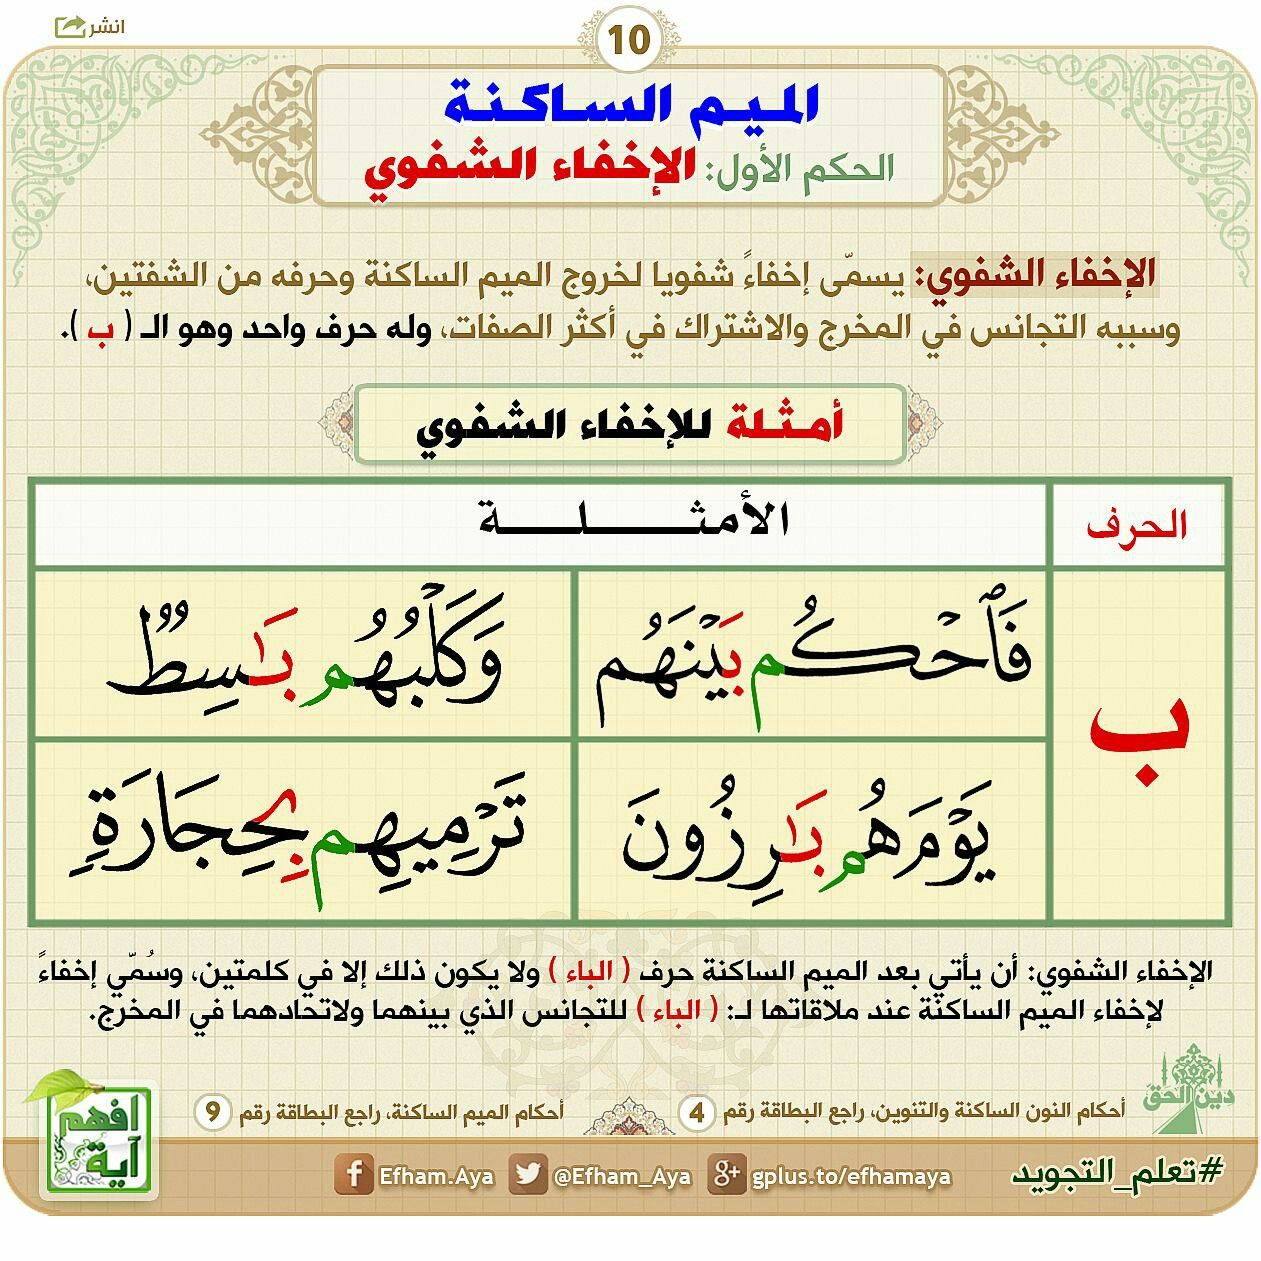 Pin By Houria Houaria On كن من الذاكرين الله Quran Tafseer Islam Facts Letter Recognition Worksheets